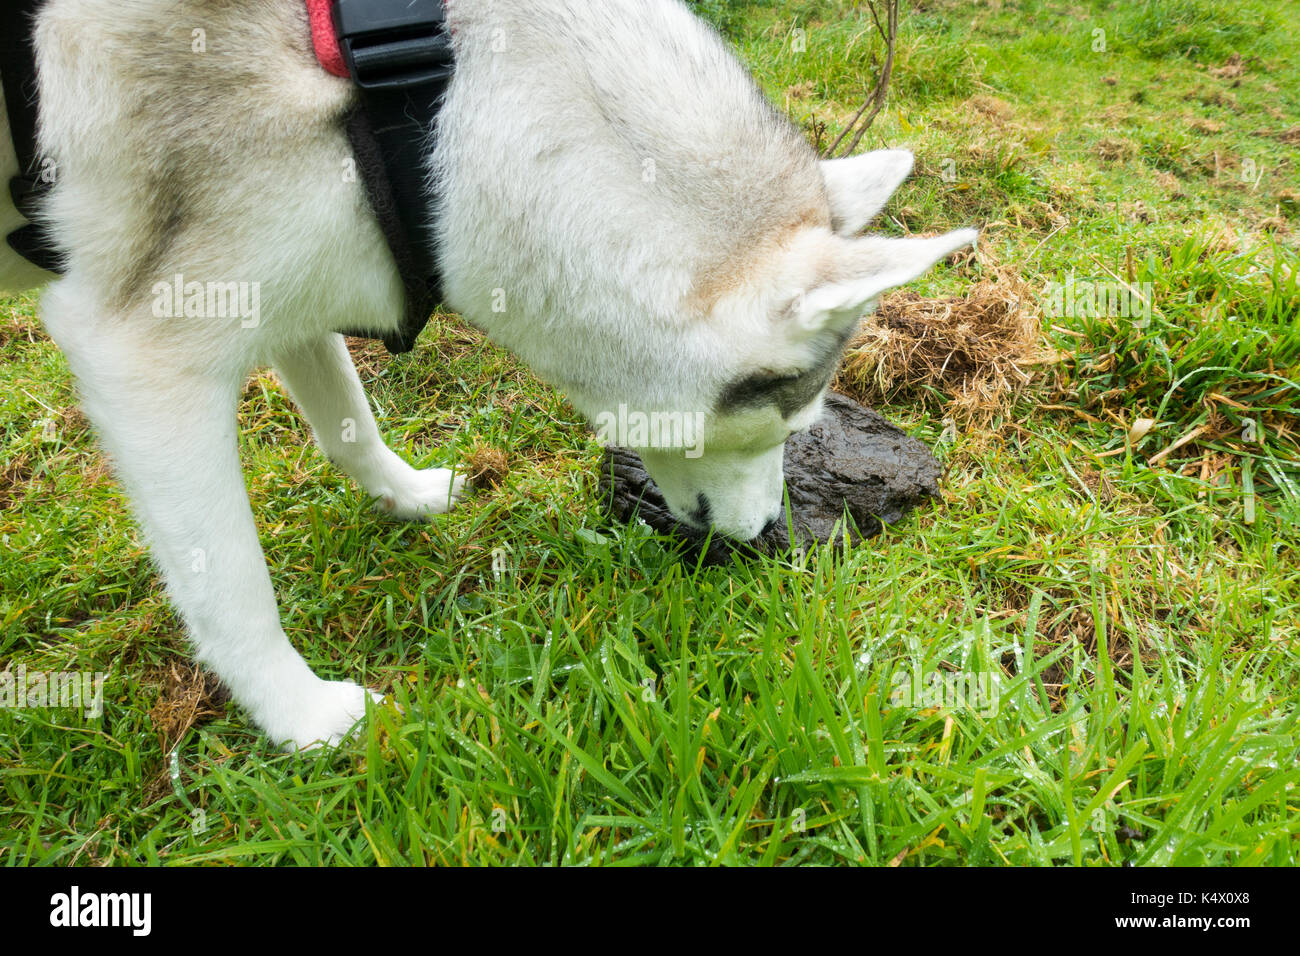 Dogs Who Eat Horse Manure